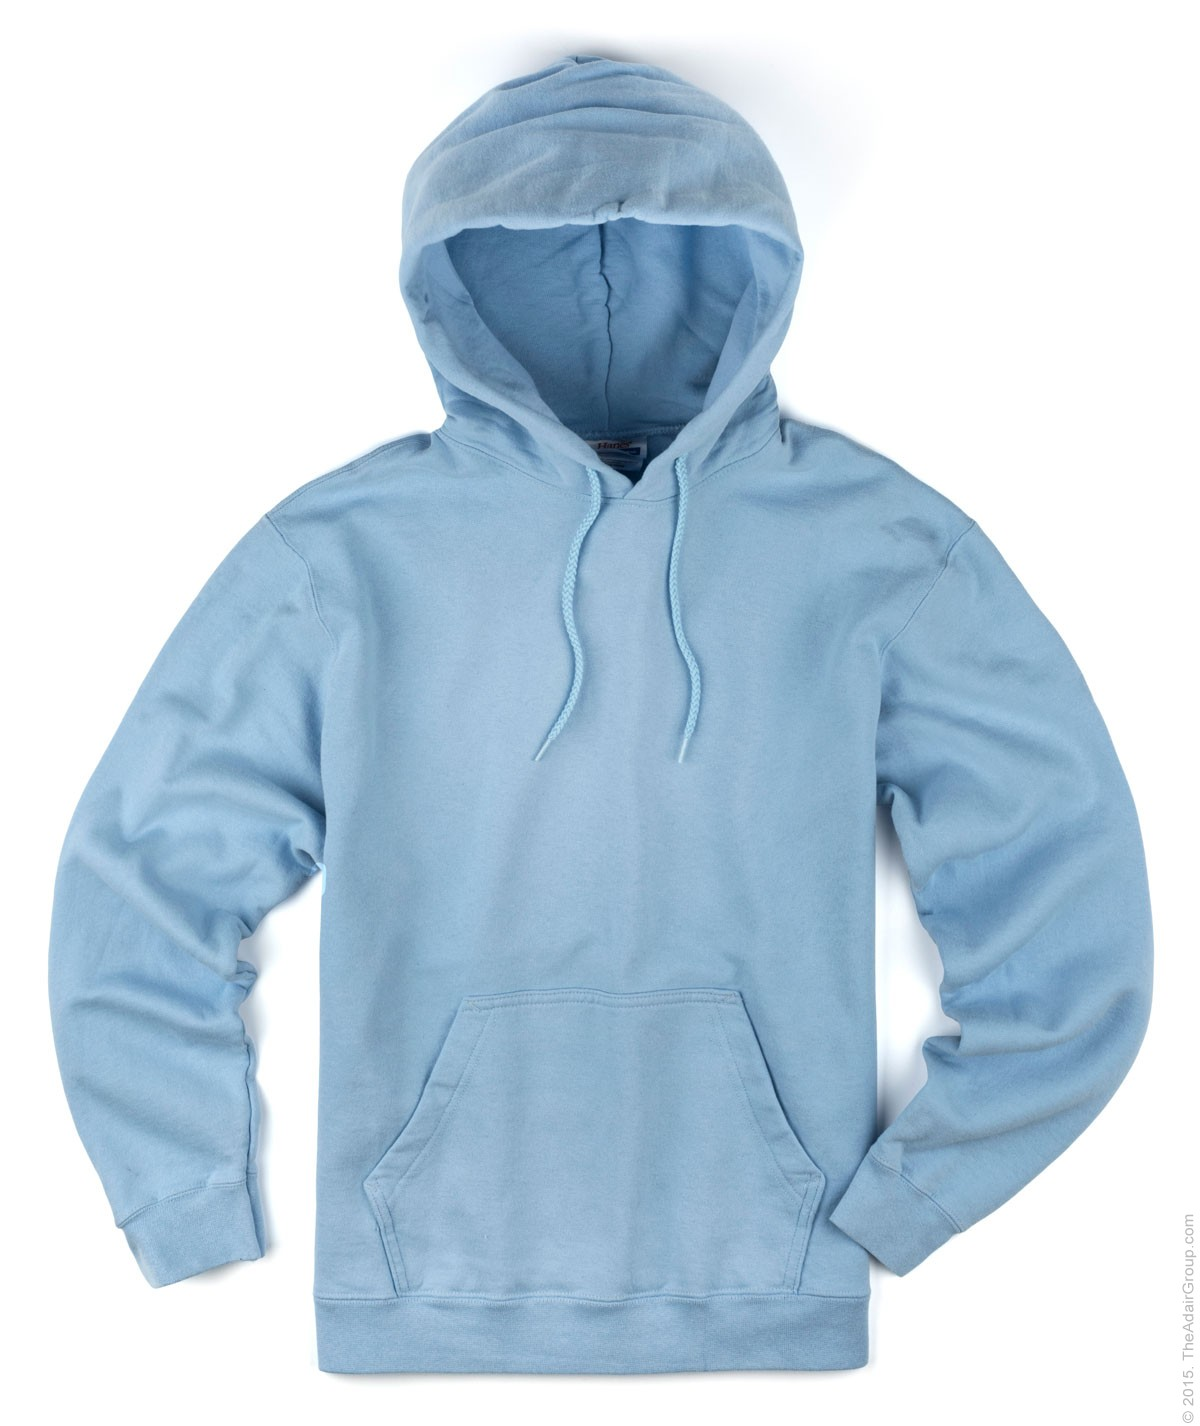 Cheap Wholesale Hoodies - Baggage Clothing